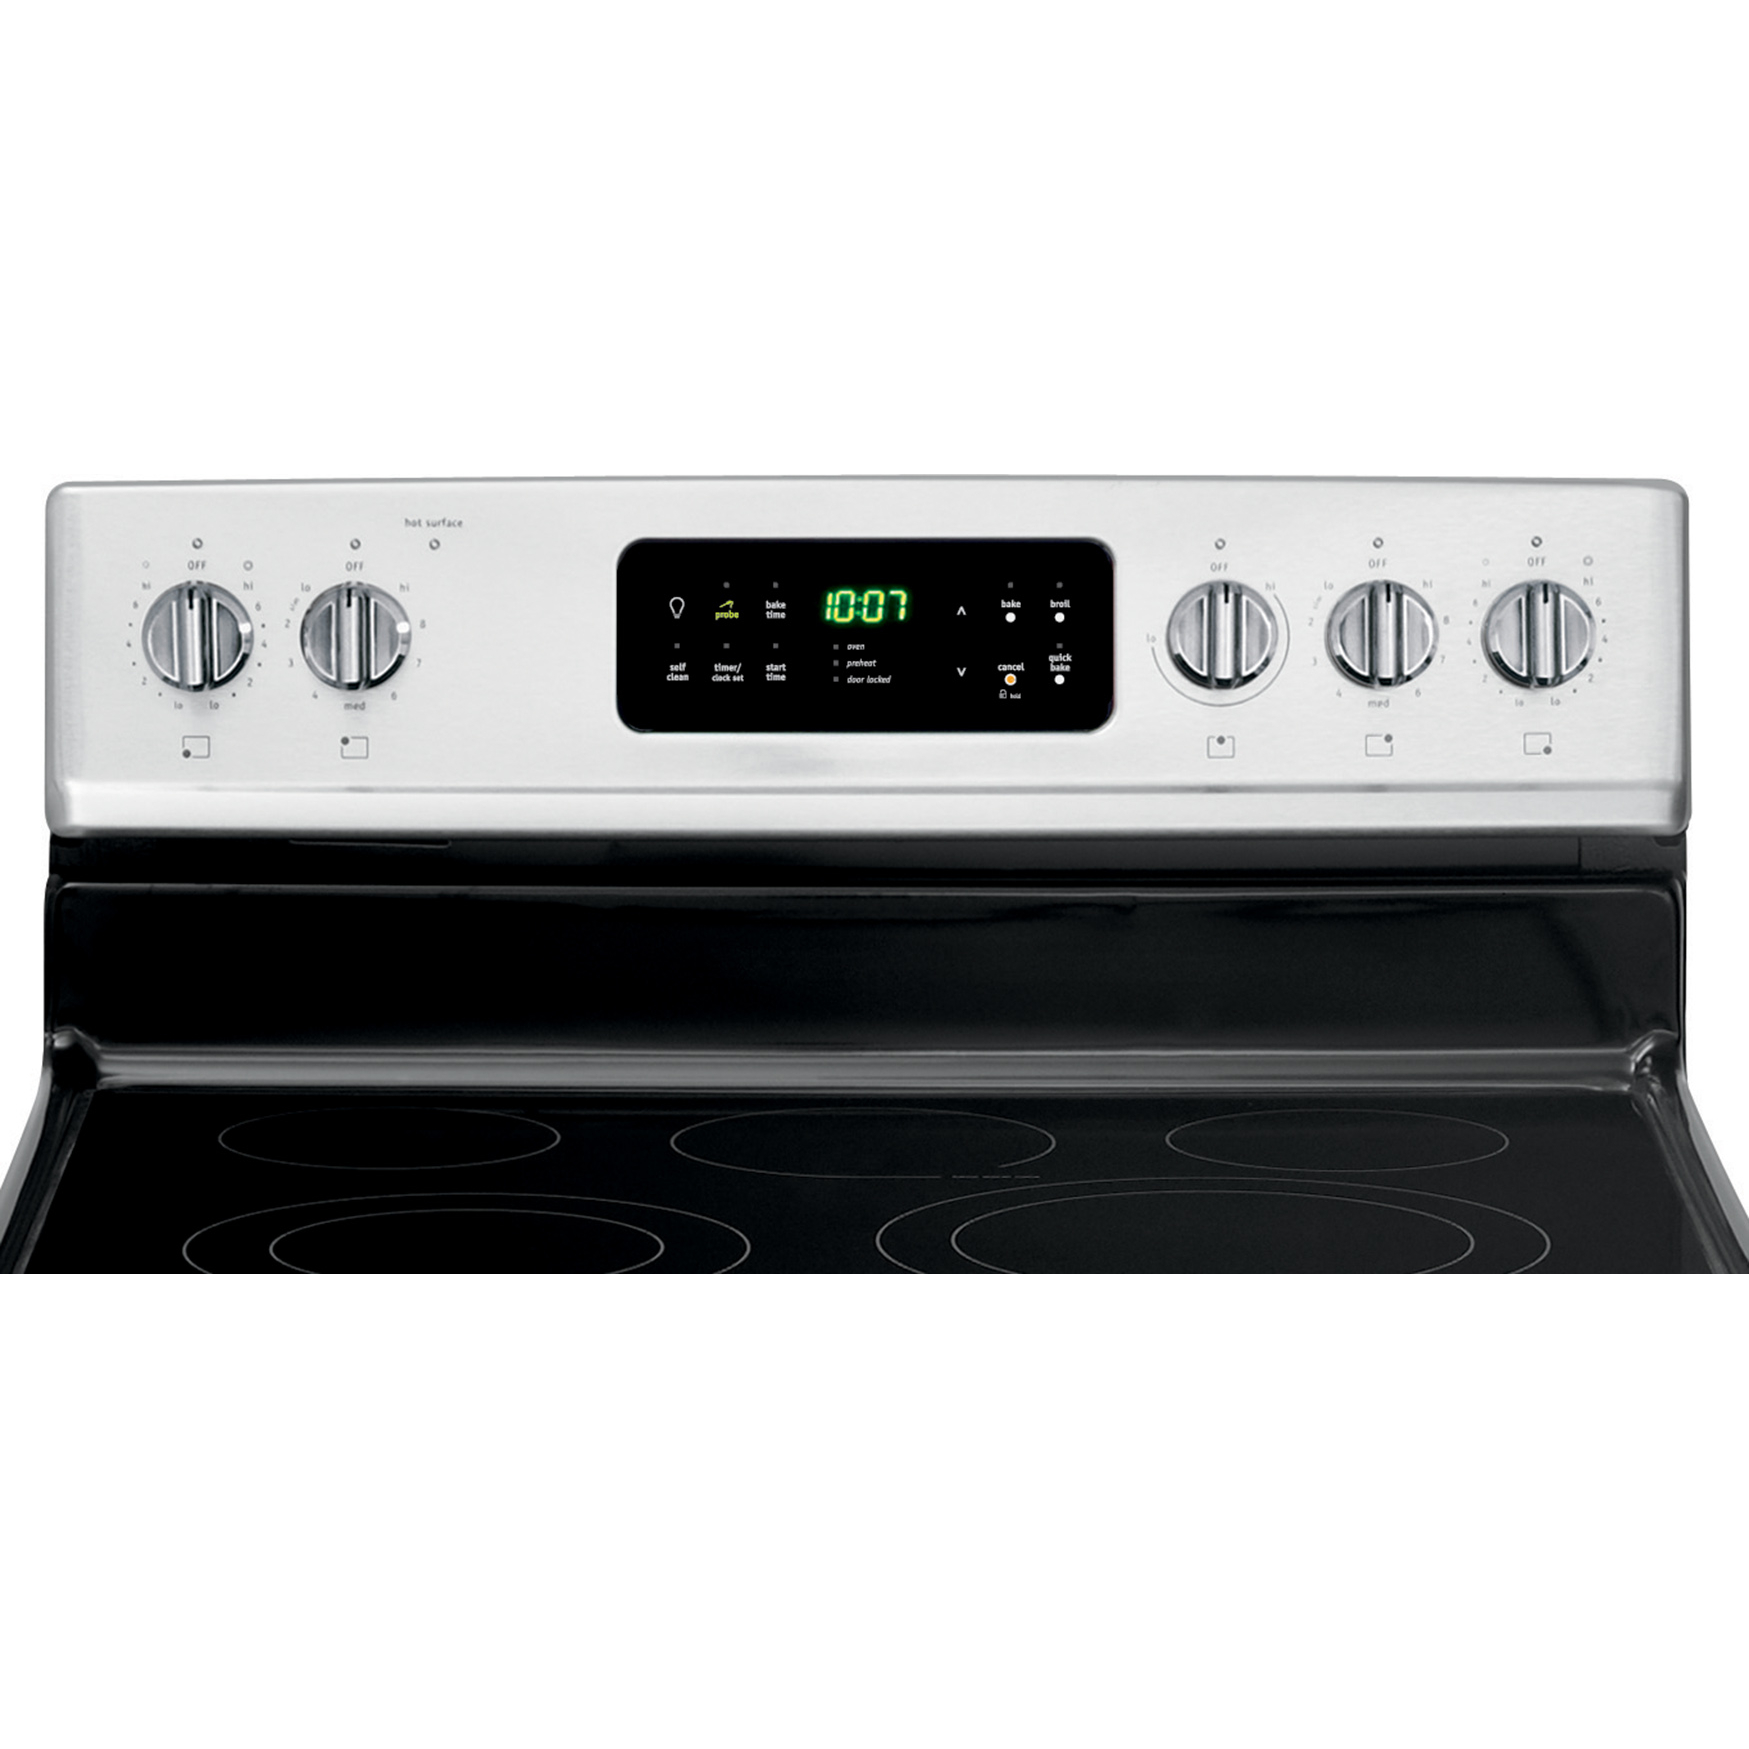 Frigidaire Gallery 5.7 cu. ft. Electric Range - Stainless Steel